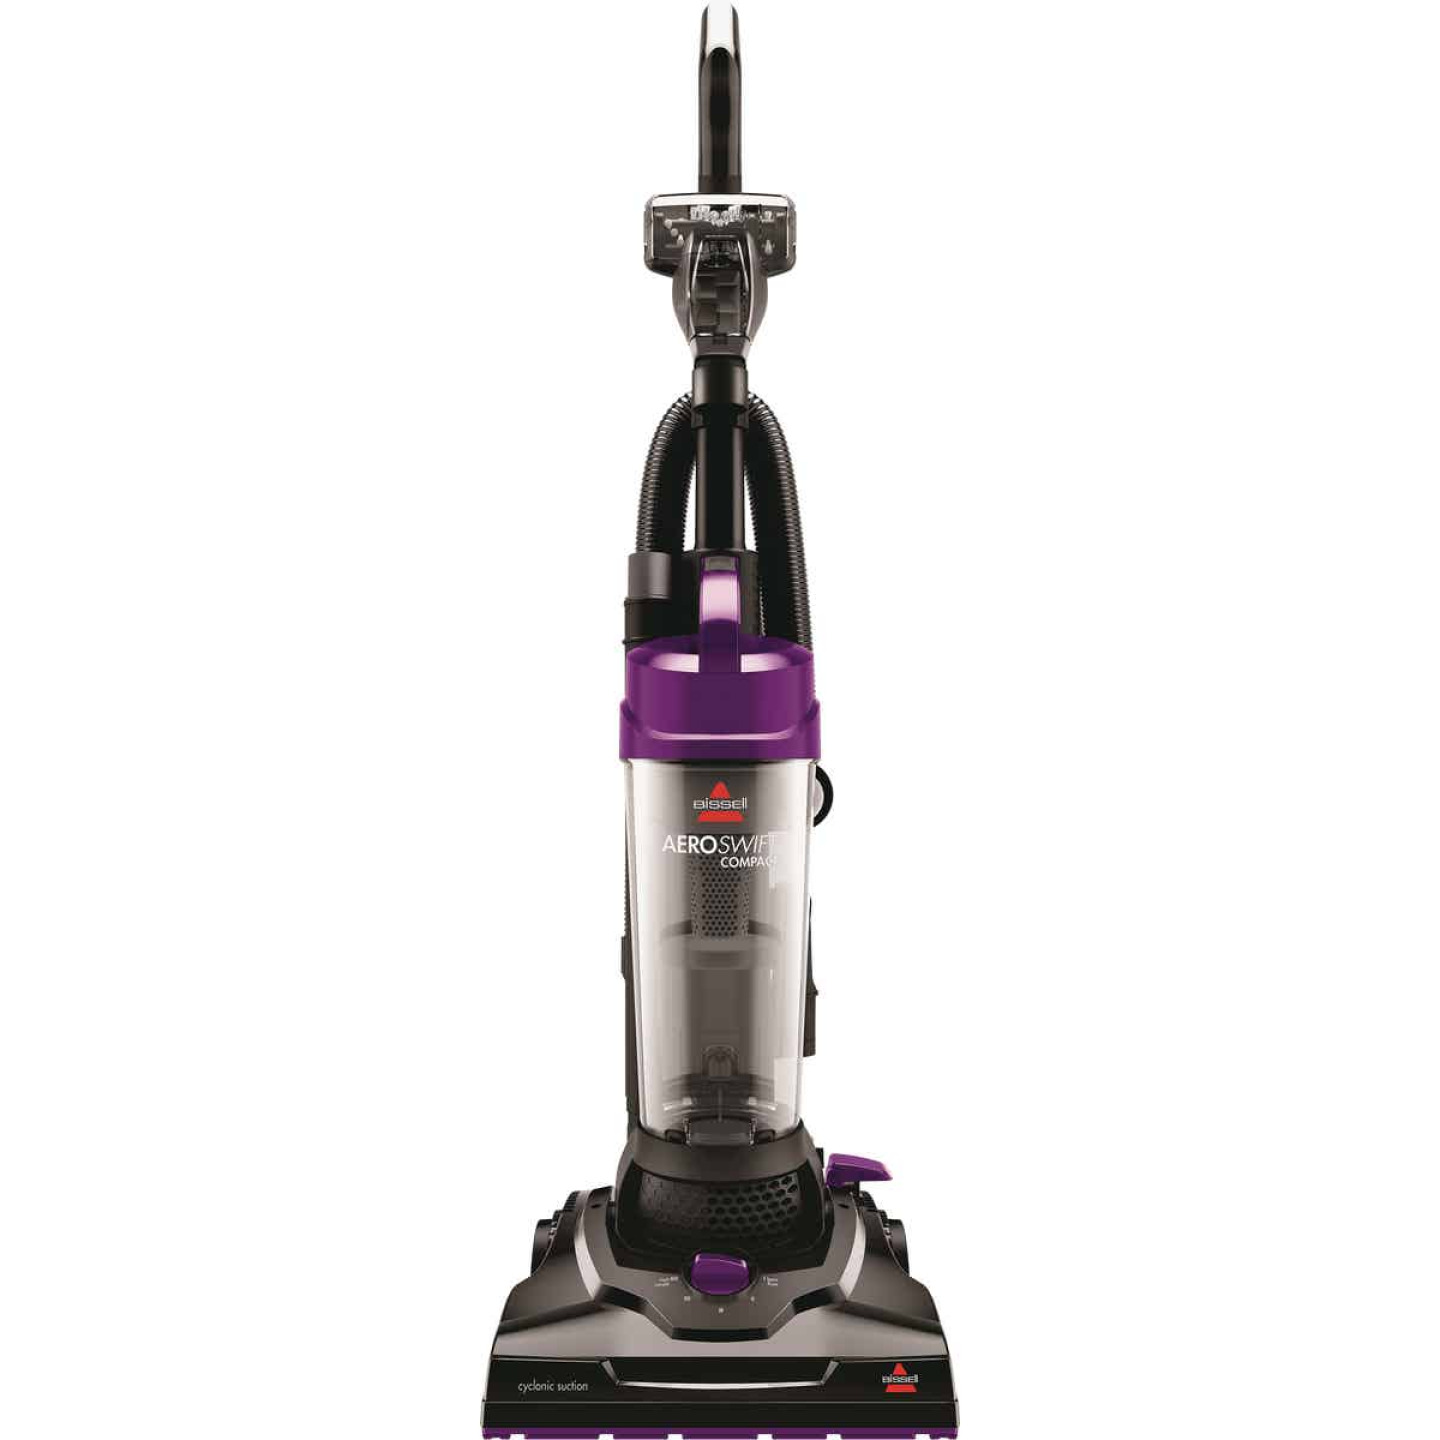 Bissell AeroSwift Compact Lightweight Bagless Upright Vacuum Cleaner Image 1